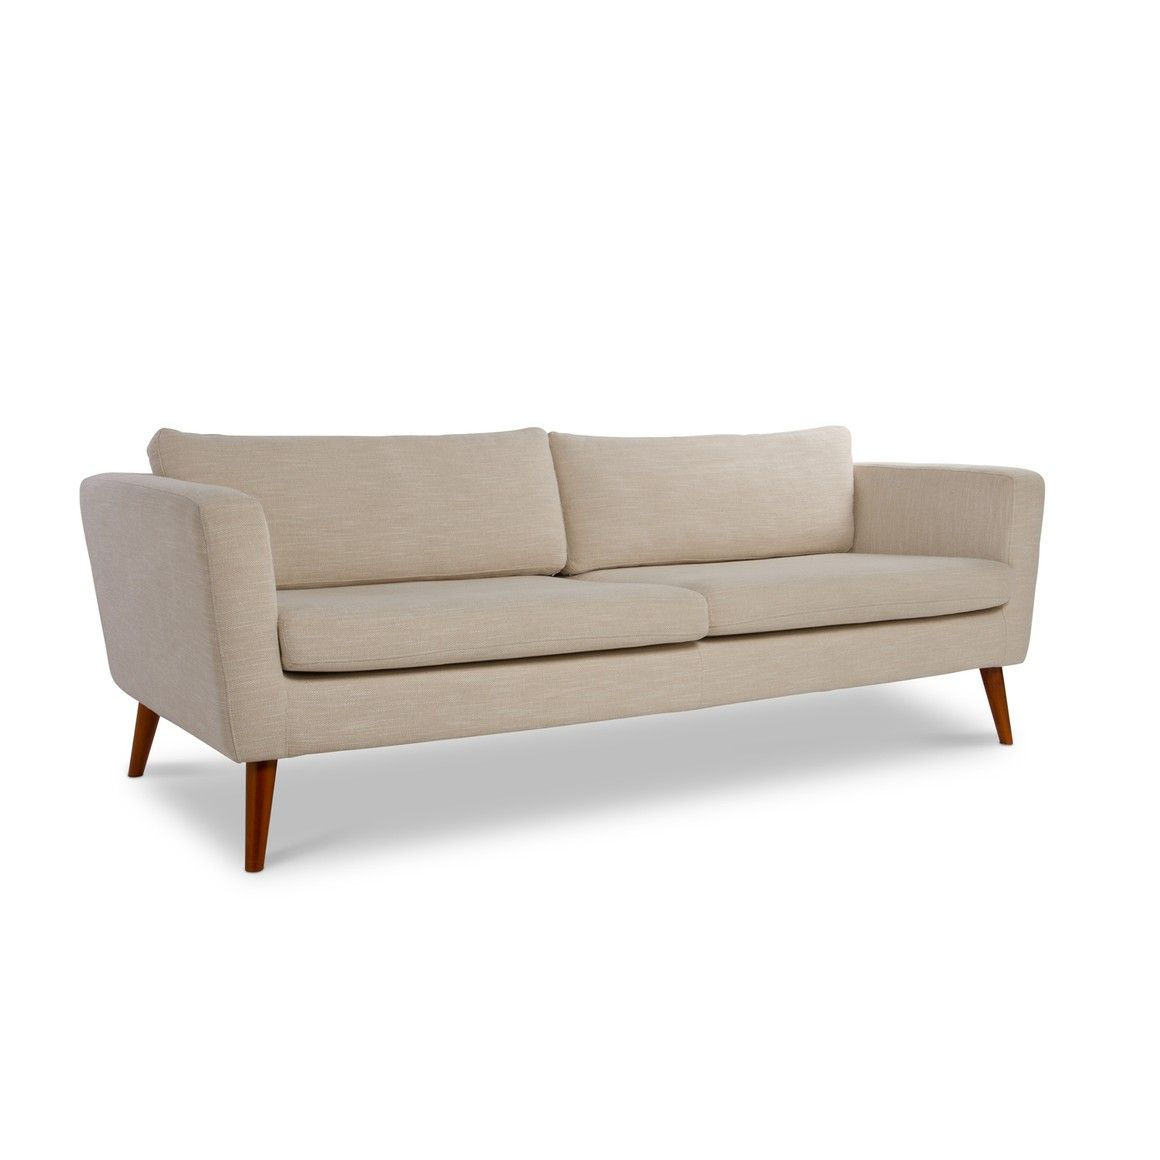 Bettsofa Interio Ch 3er Sofa Etna Beige Akazie Kiefernholz 13410900 Furniture